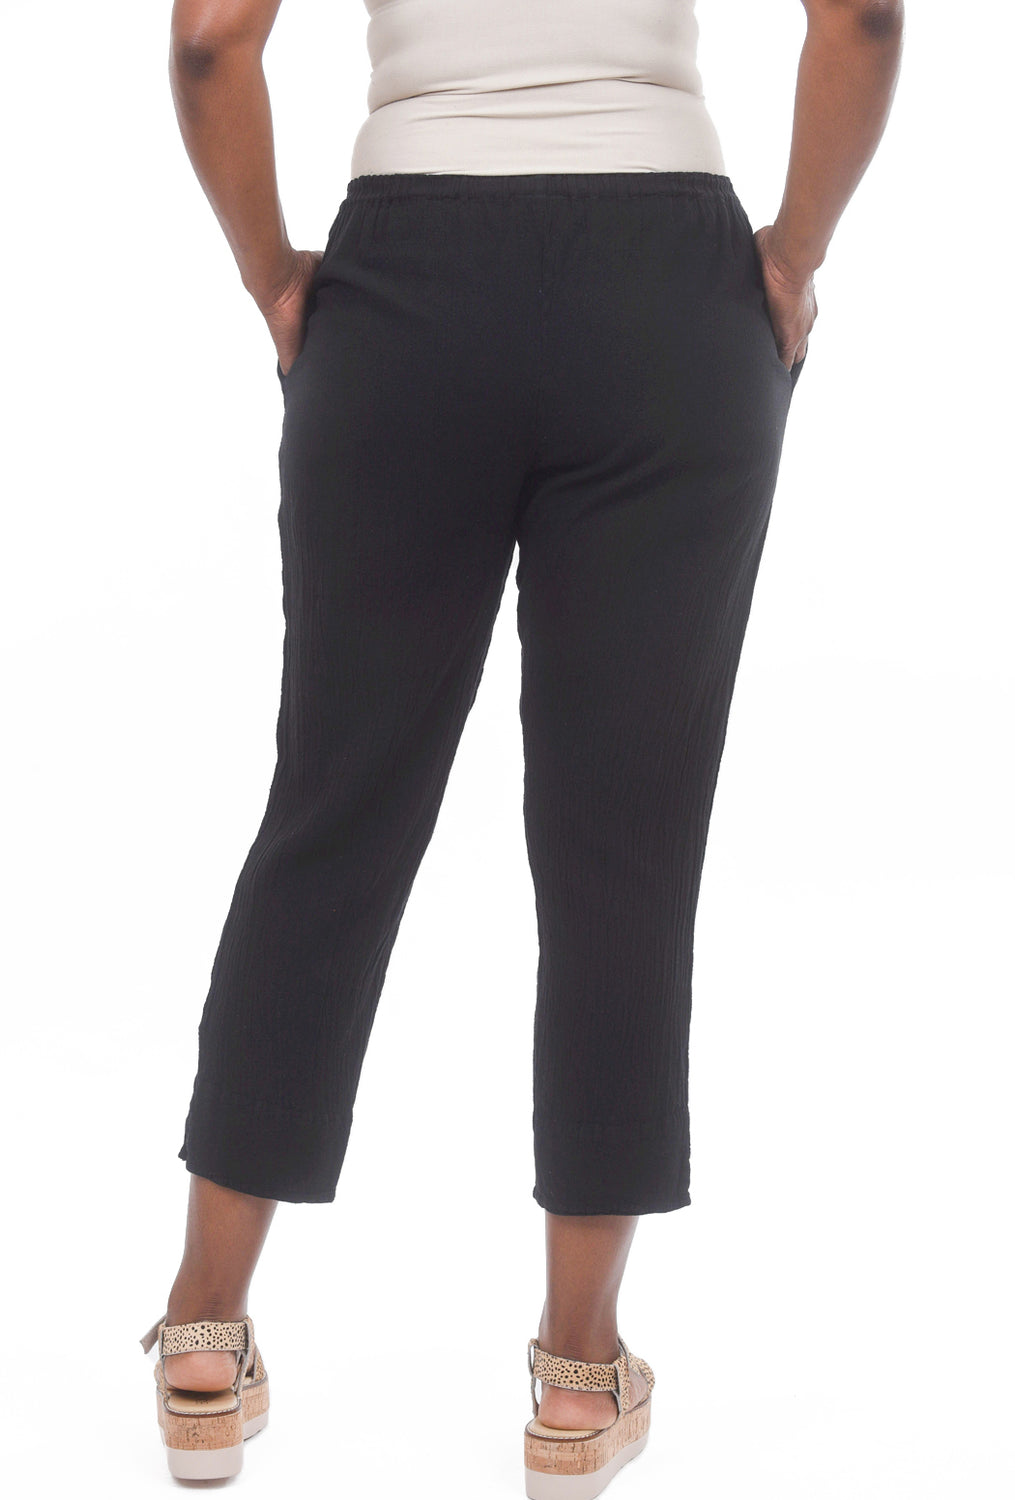 Oh My Gauze Fiona Pants, Black